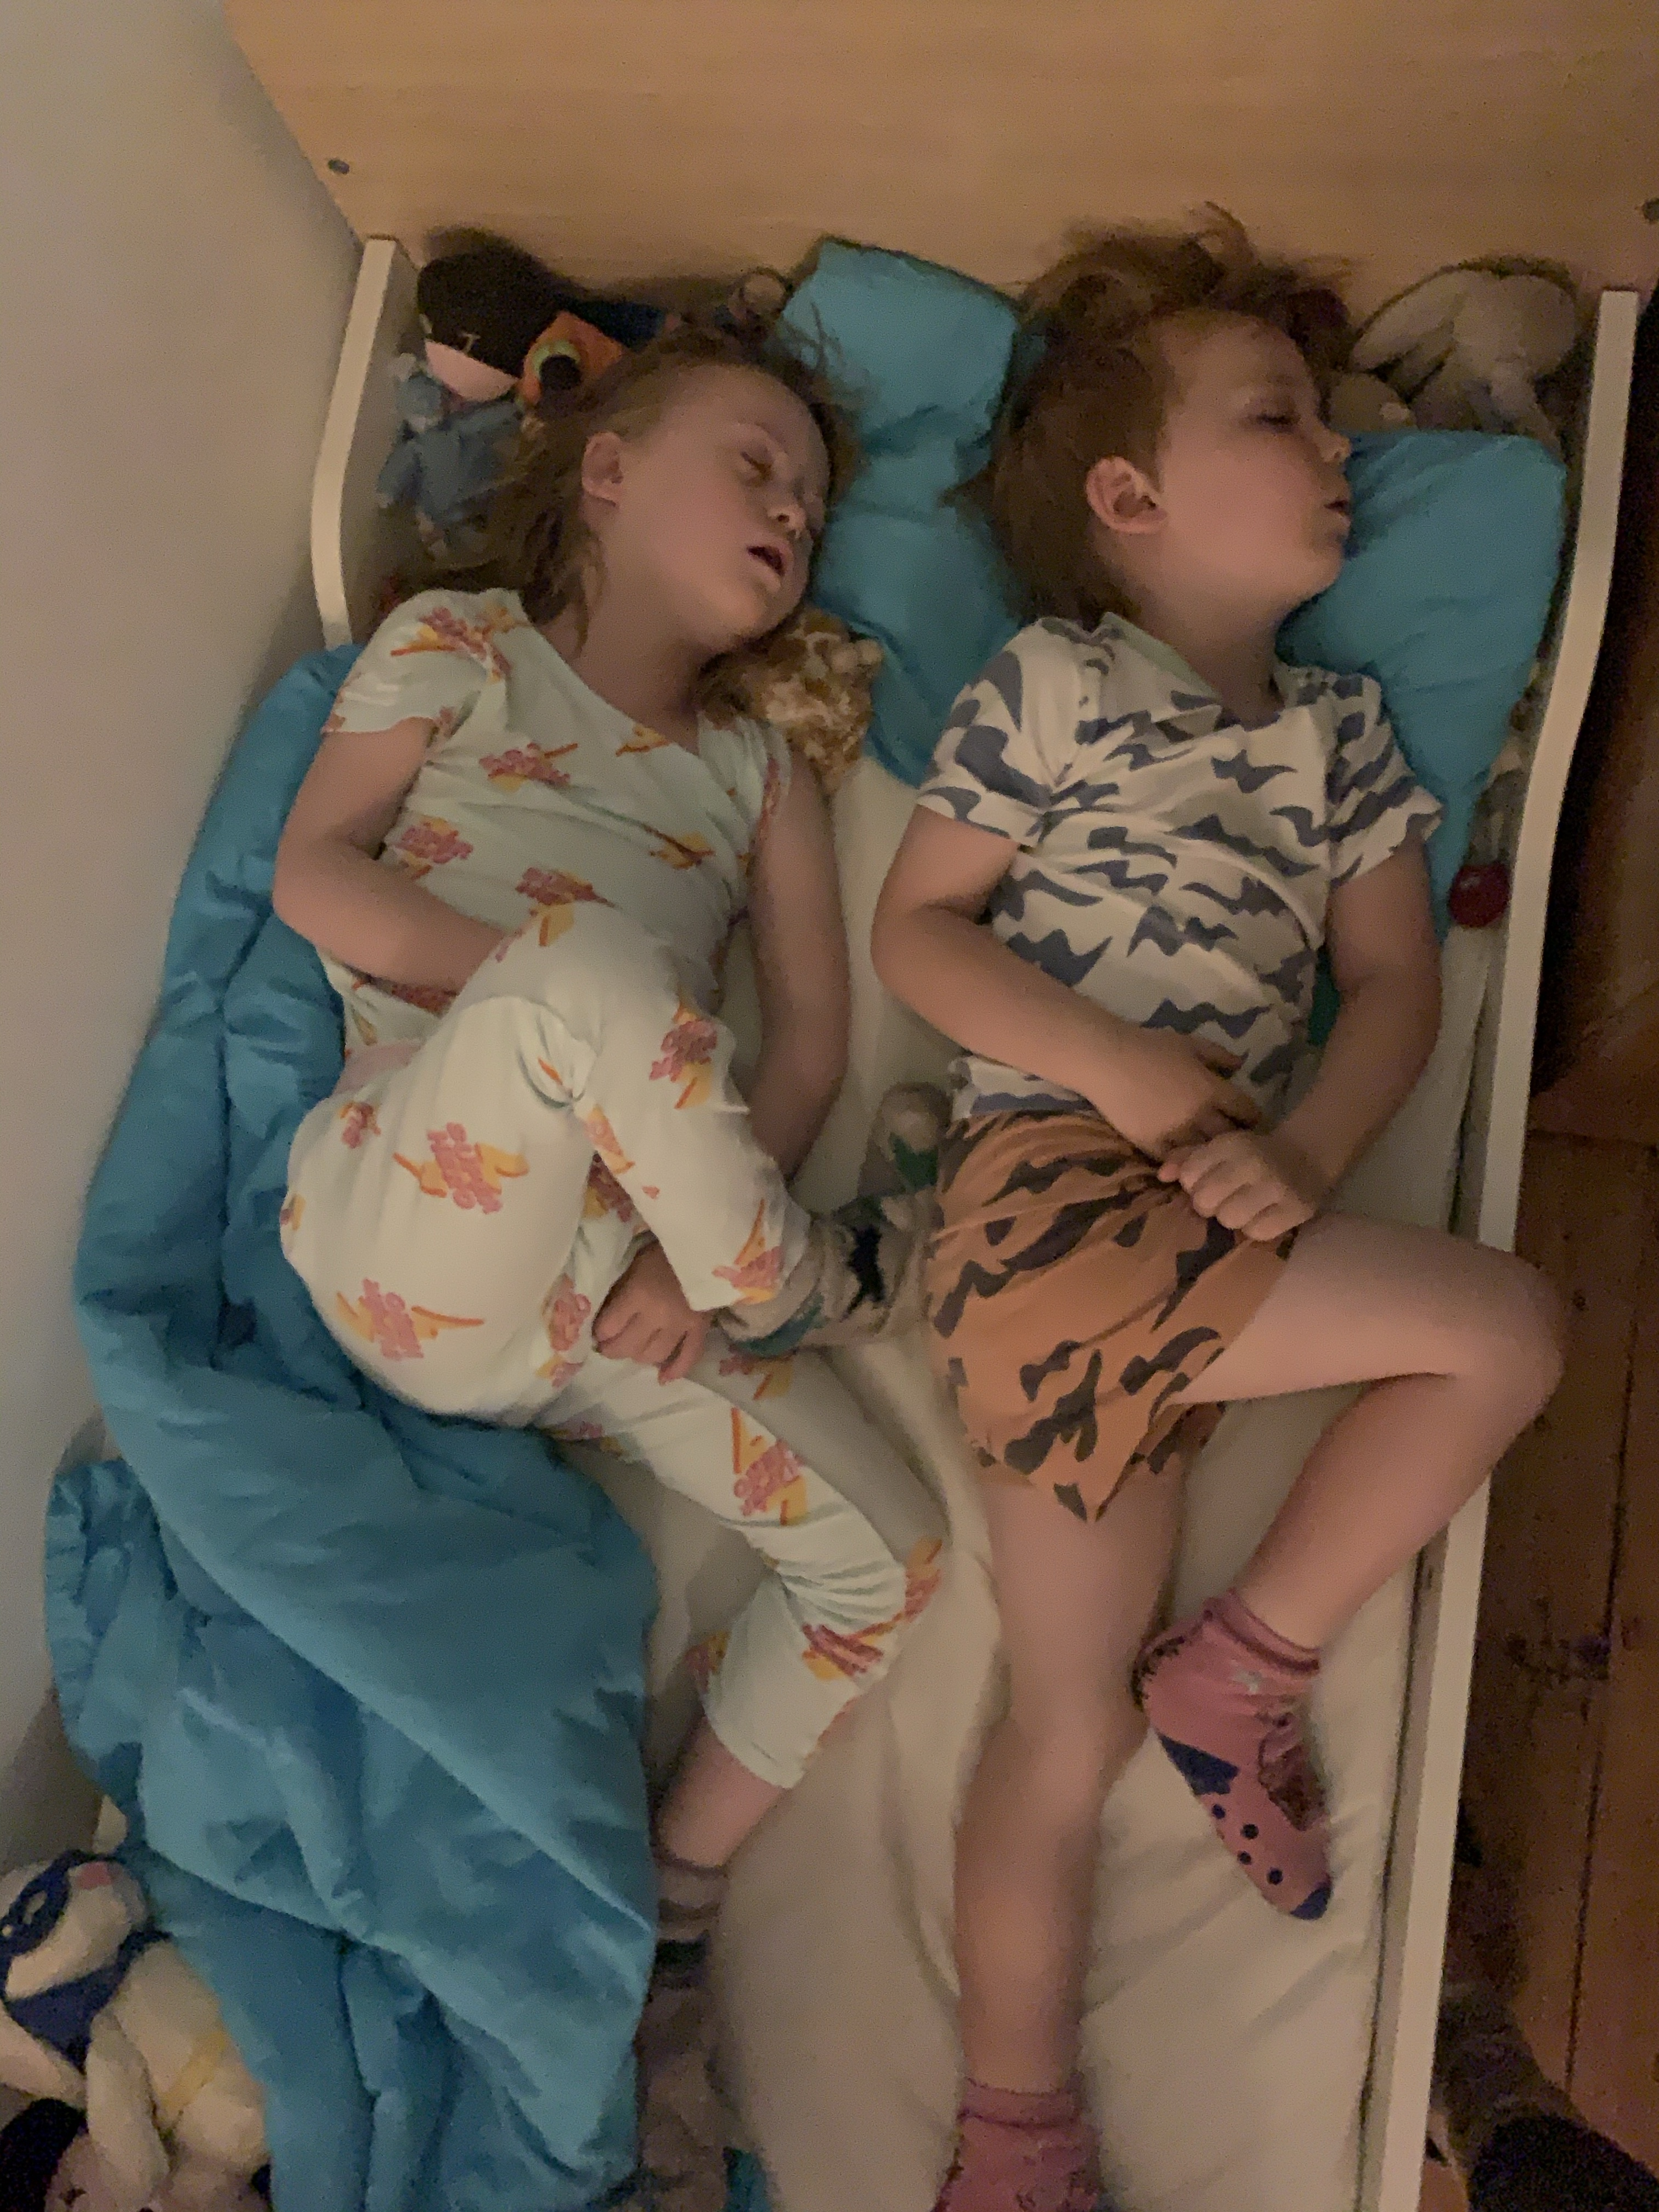 Sister and brother asleep